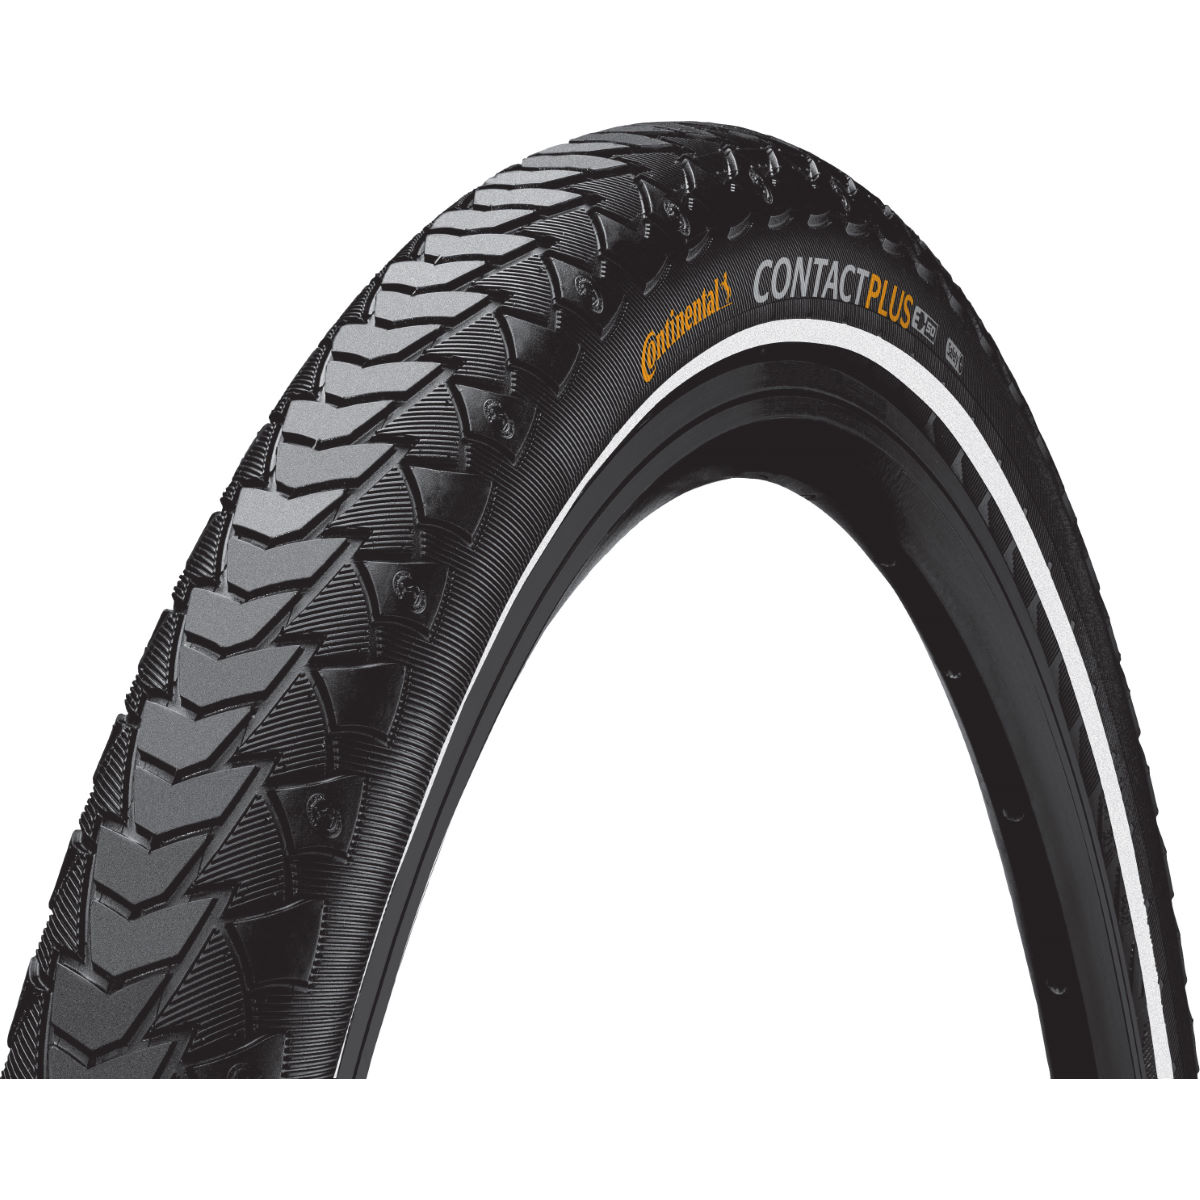 Continental Continental Contact Plus Touring Tyre   Tyres